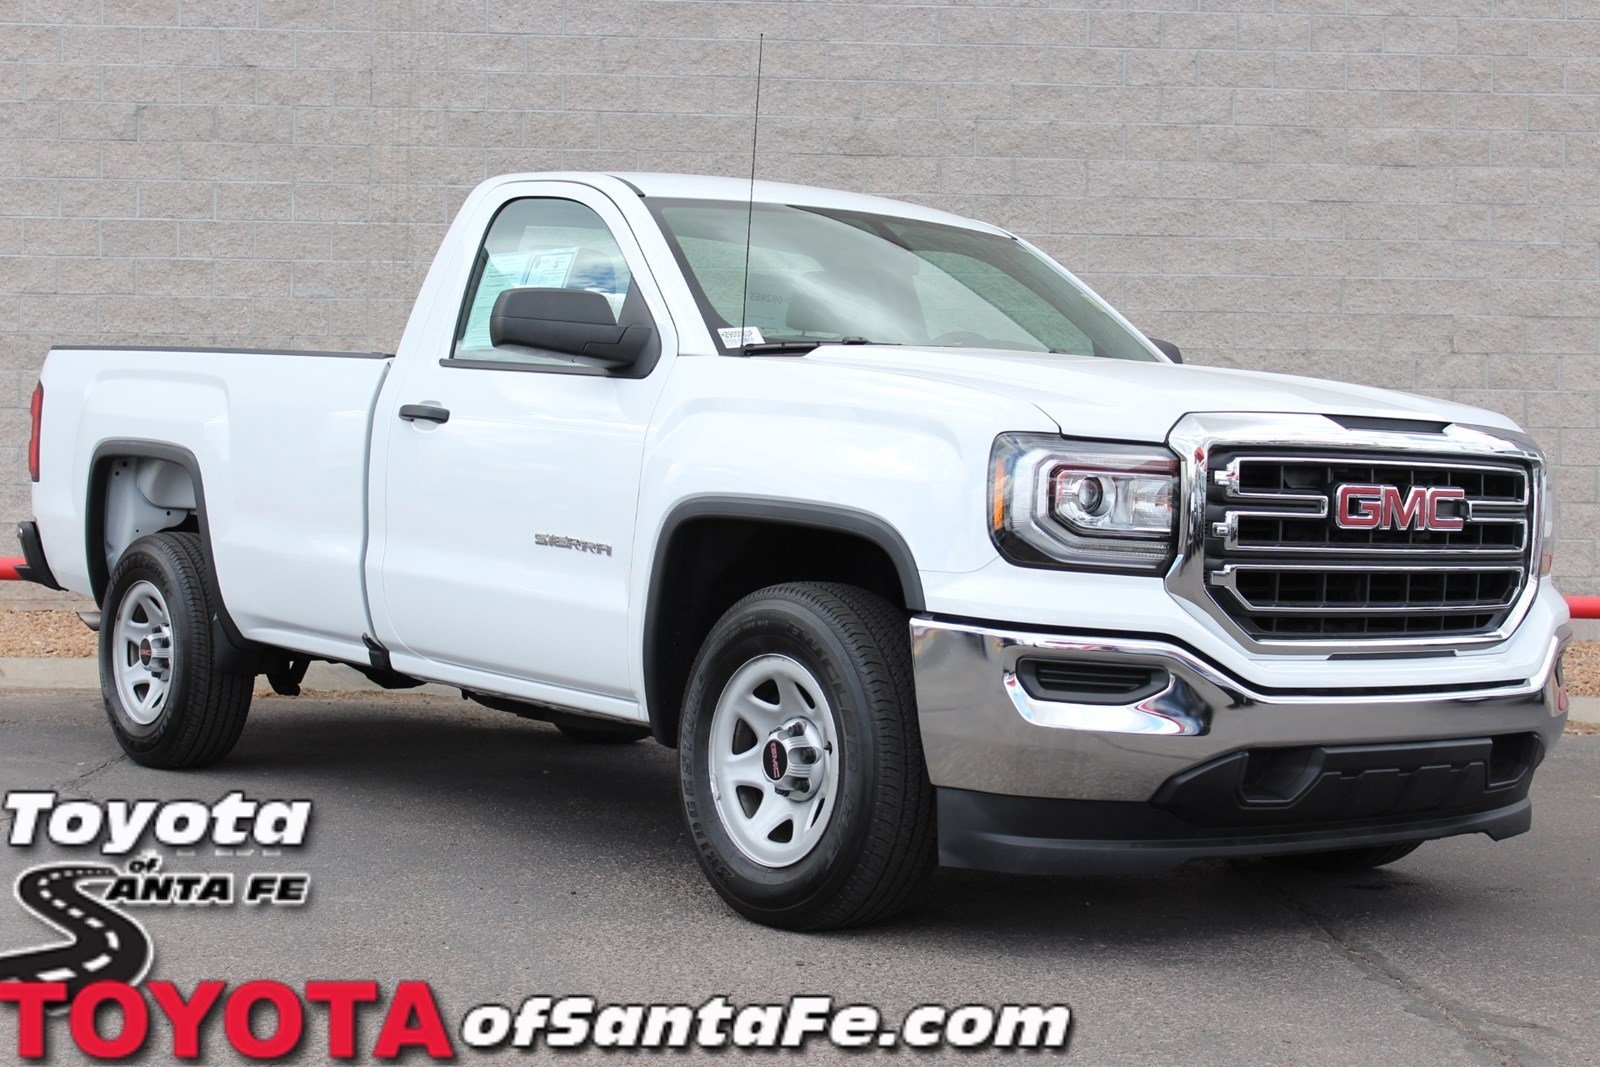 Pre-Owned 2017 GMC Sierra 1500 Base RWD Regular Cab Truck HZ900051P